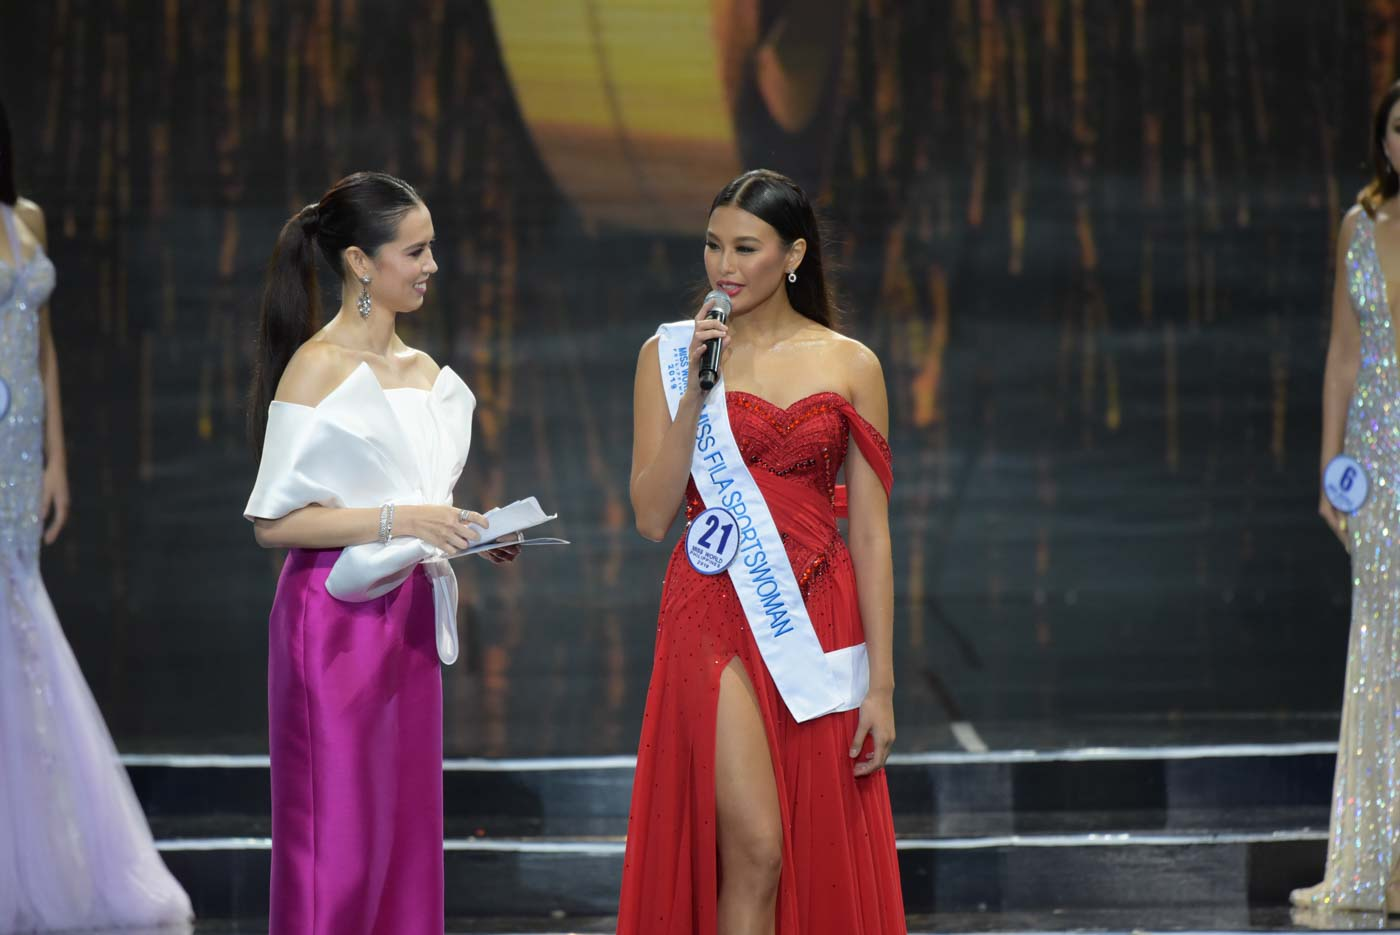 CHAT. Michelle Dee during the conversation segment of the Miss World Philippines pageant. Photo by Alecs Ongcal/Rappler